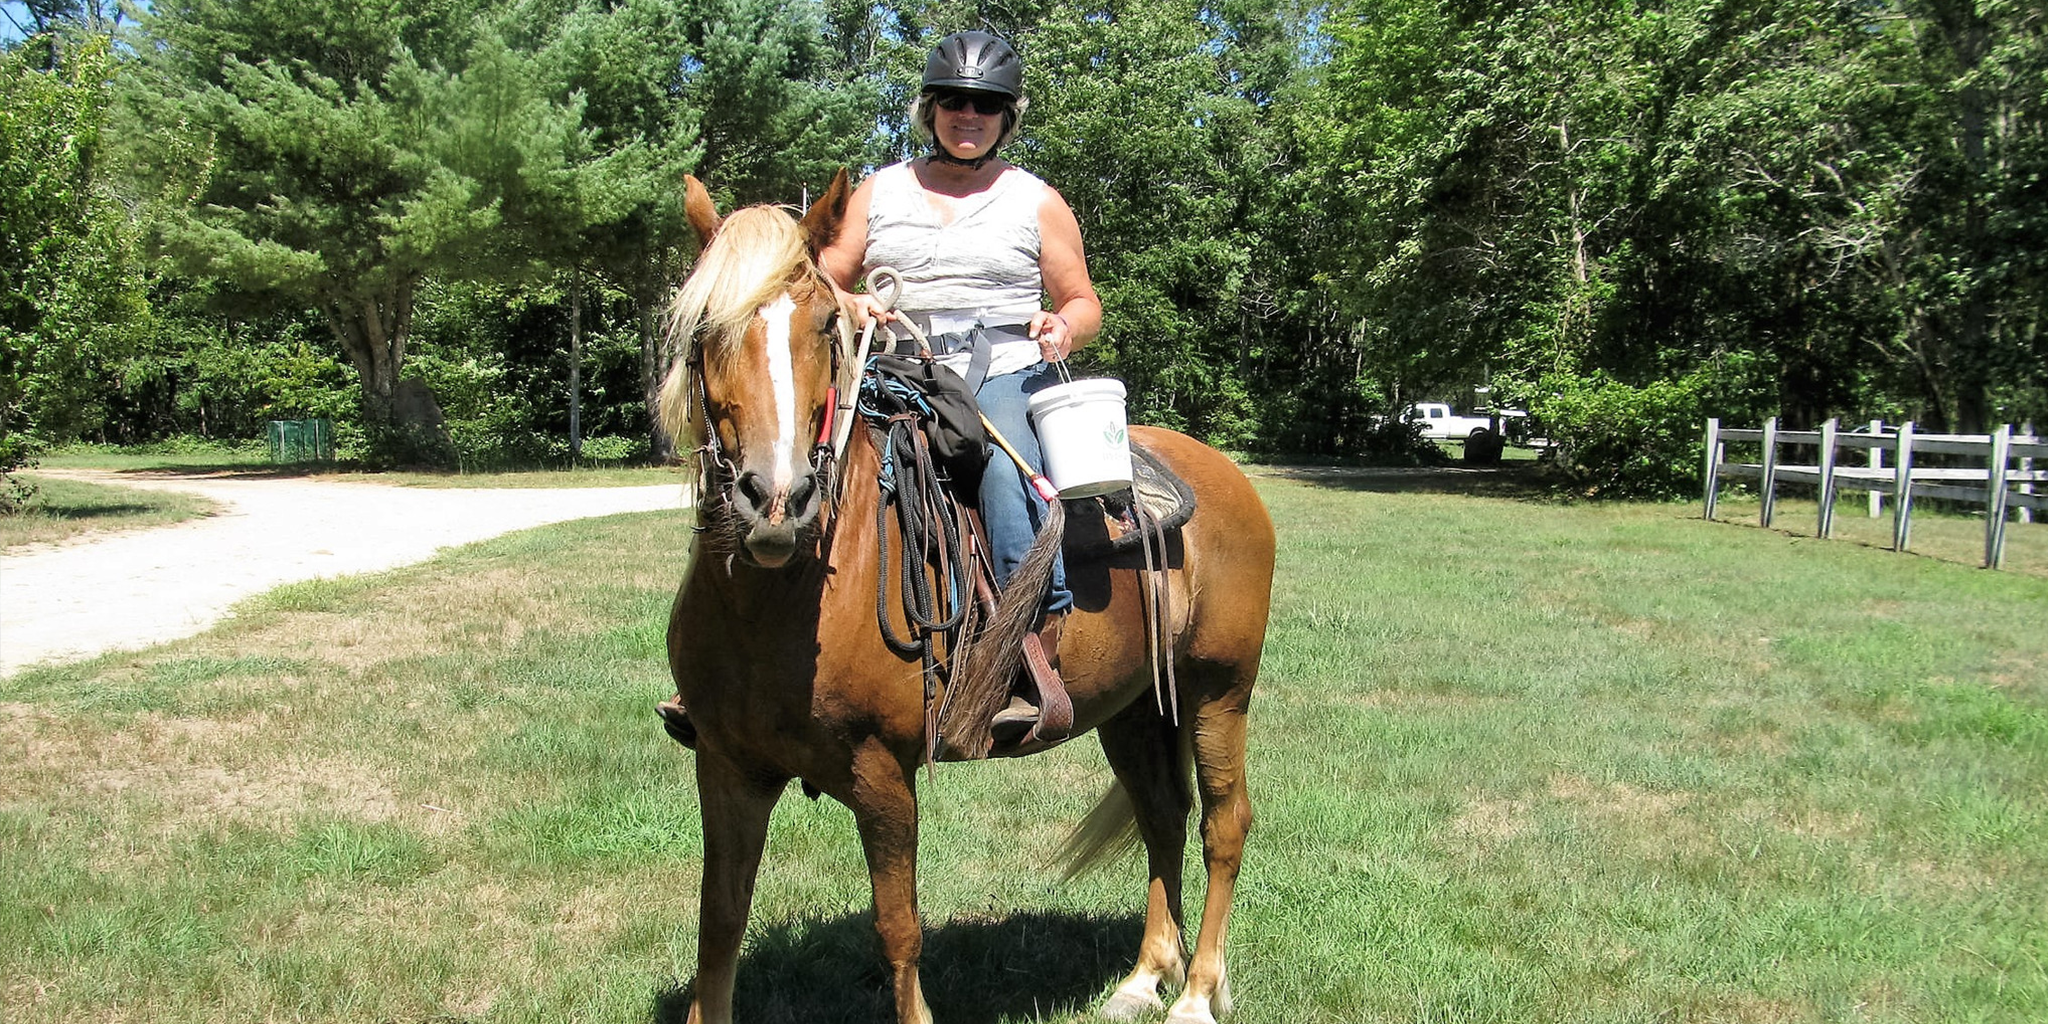 Rhode Island Federation of Riding Clubs Celebrates 50th Anniversary